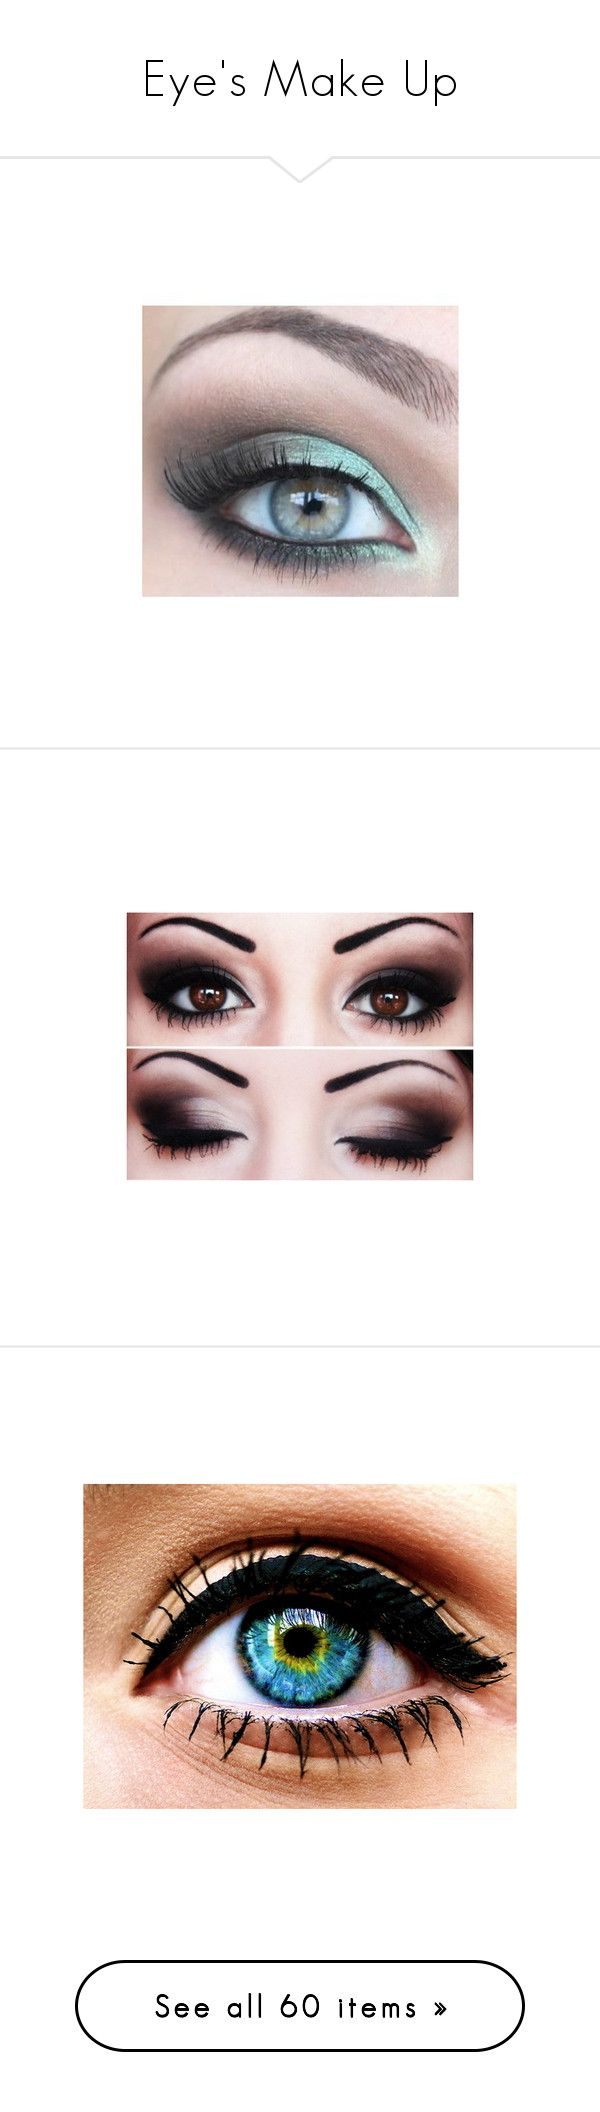 """Eye's Make Up"" by jaz-flor ❤ liked on Polyvore featuring beauty products, makeup, eye makeup, eyeshadow, eyes, beauty, opi, pictures, bourjois and bourjois eyeshadow"